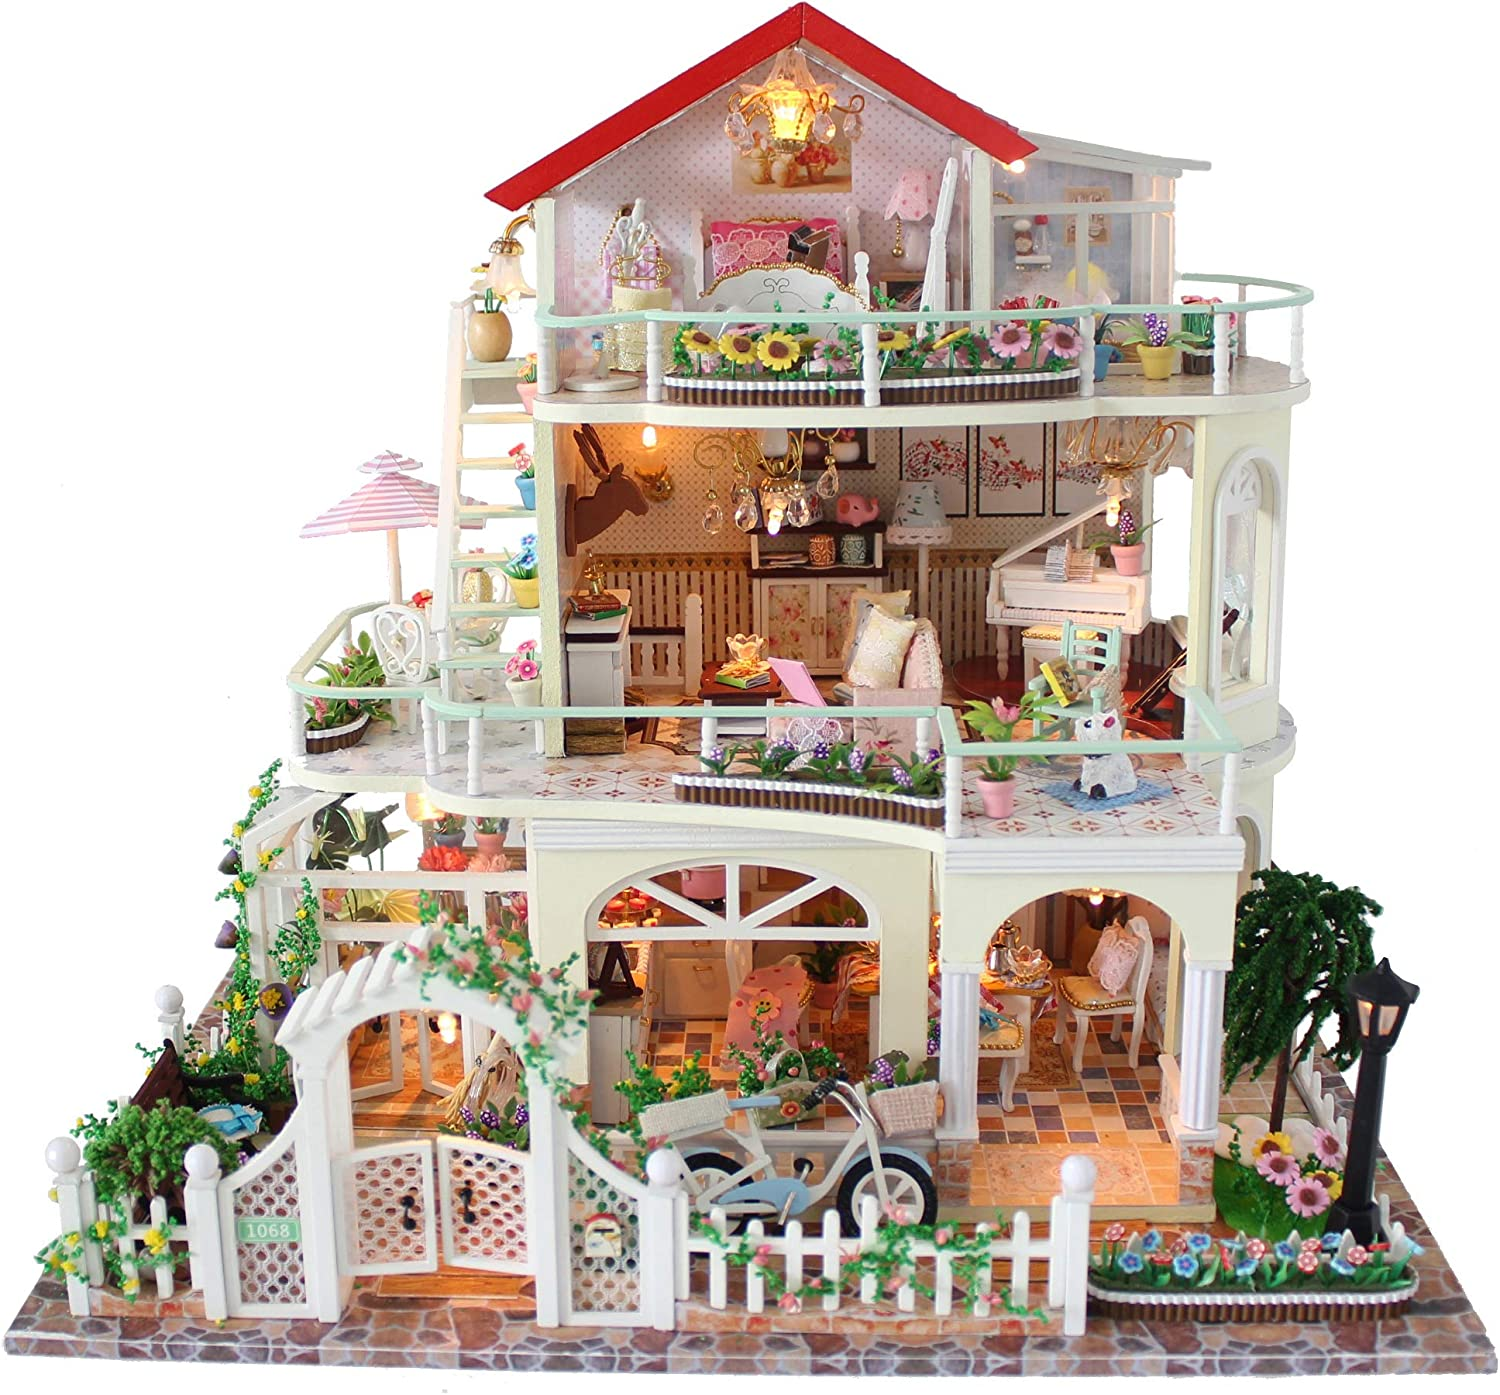 Flever Dollhouse Miniature DIY House Kit Creative Room with Furniture for Romantic Valentine's Gift (Be Enjuring As The Universe)